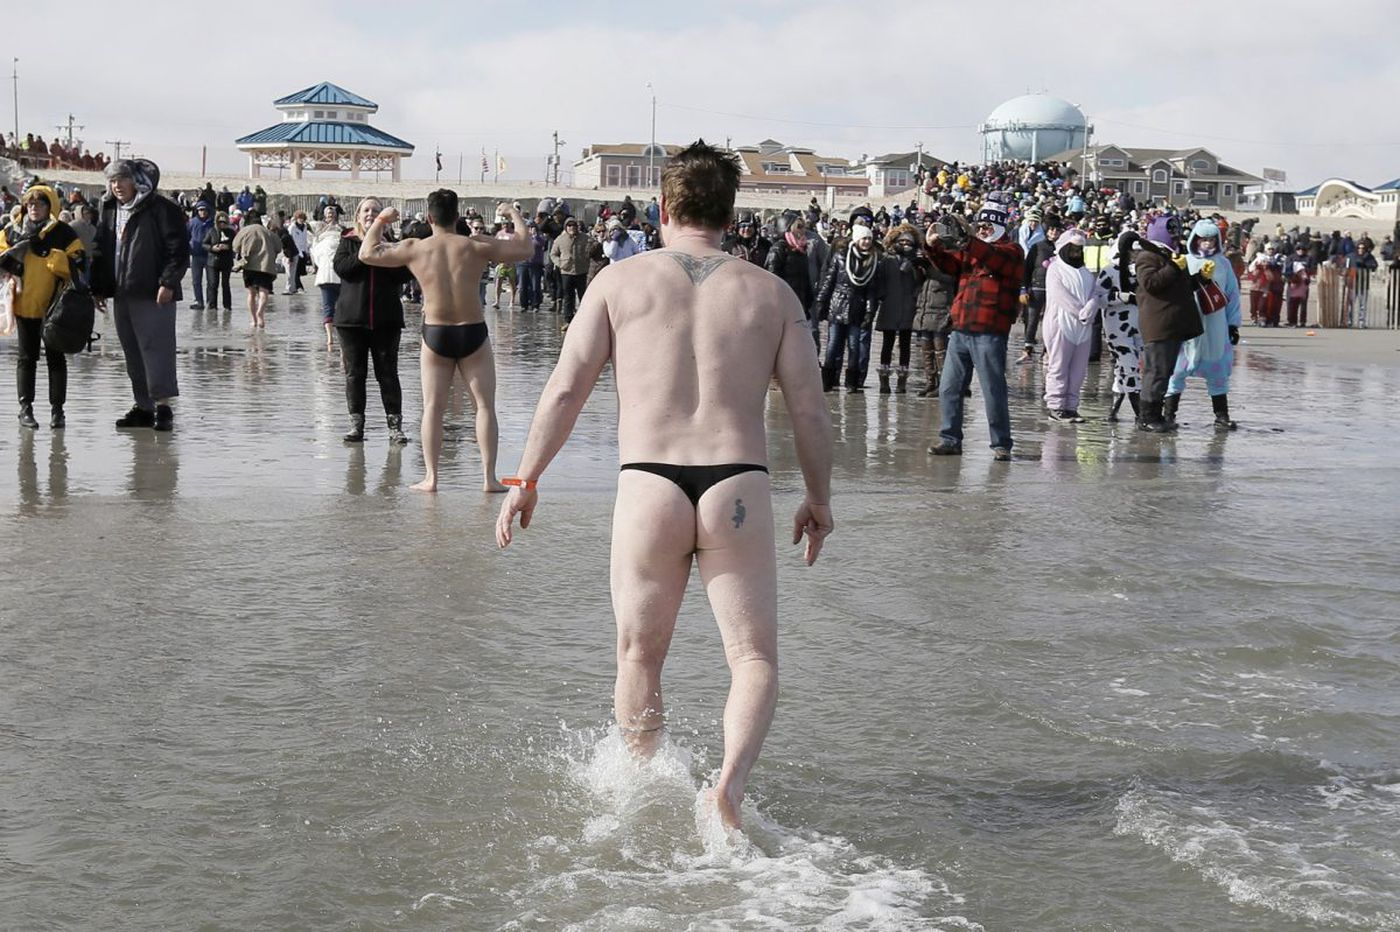 Too cold for a polar bear plunge at the Shore?